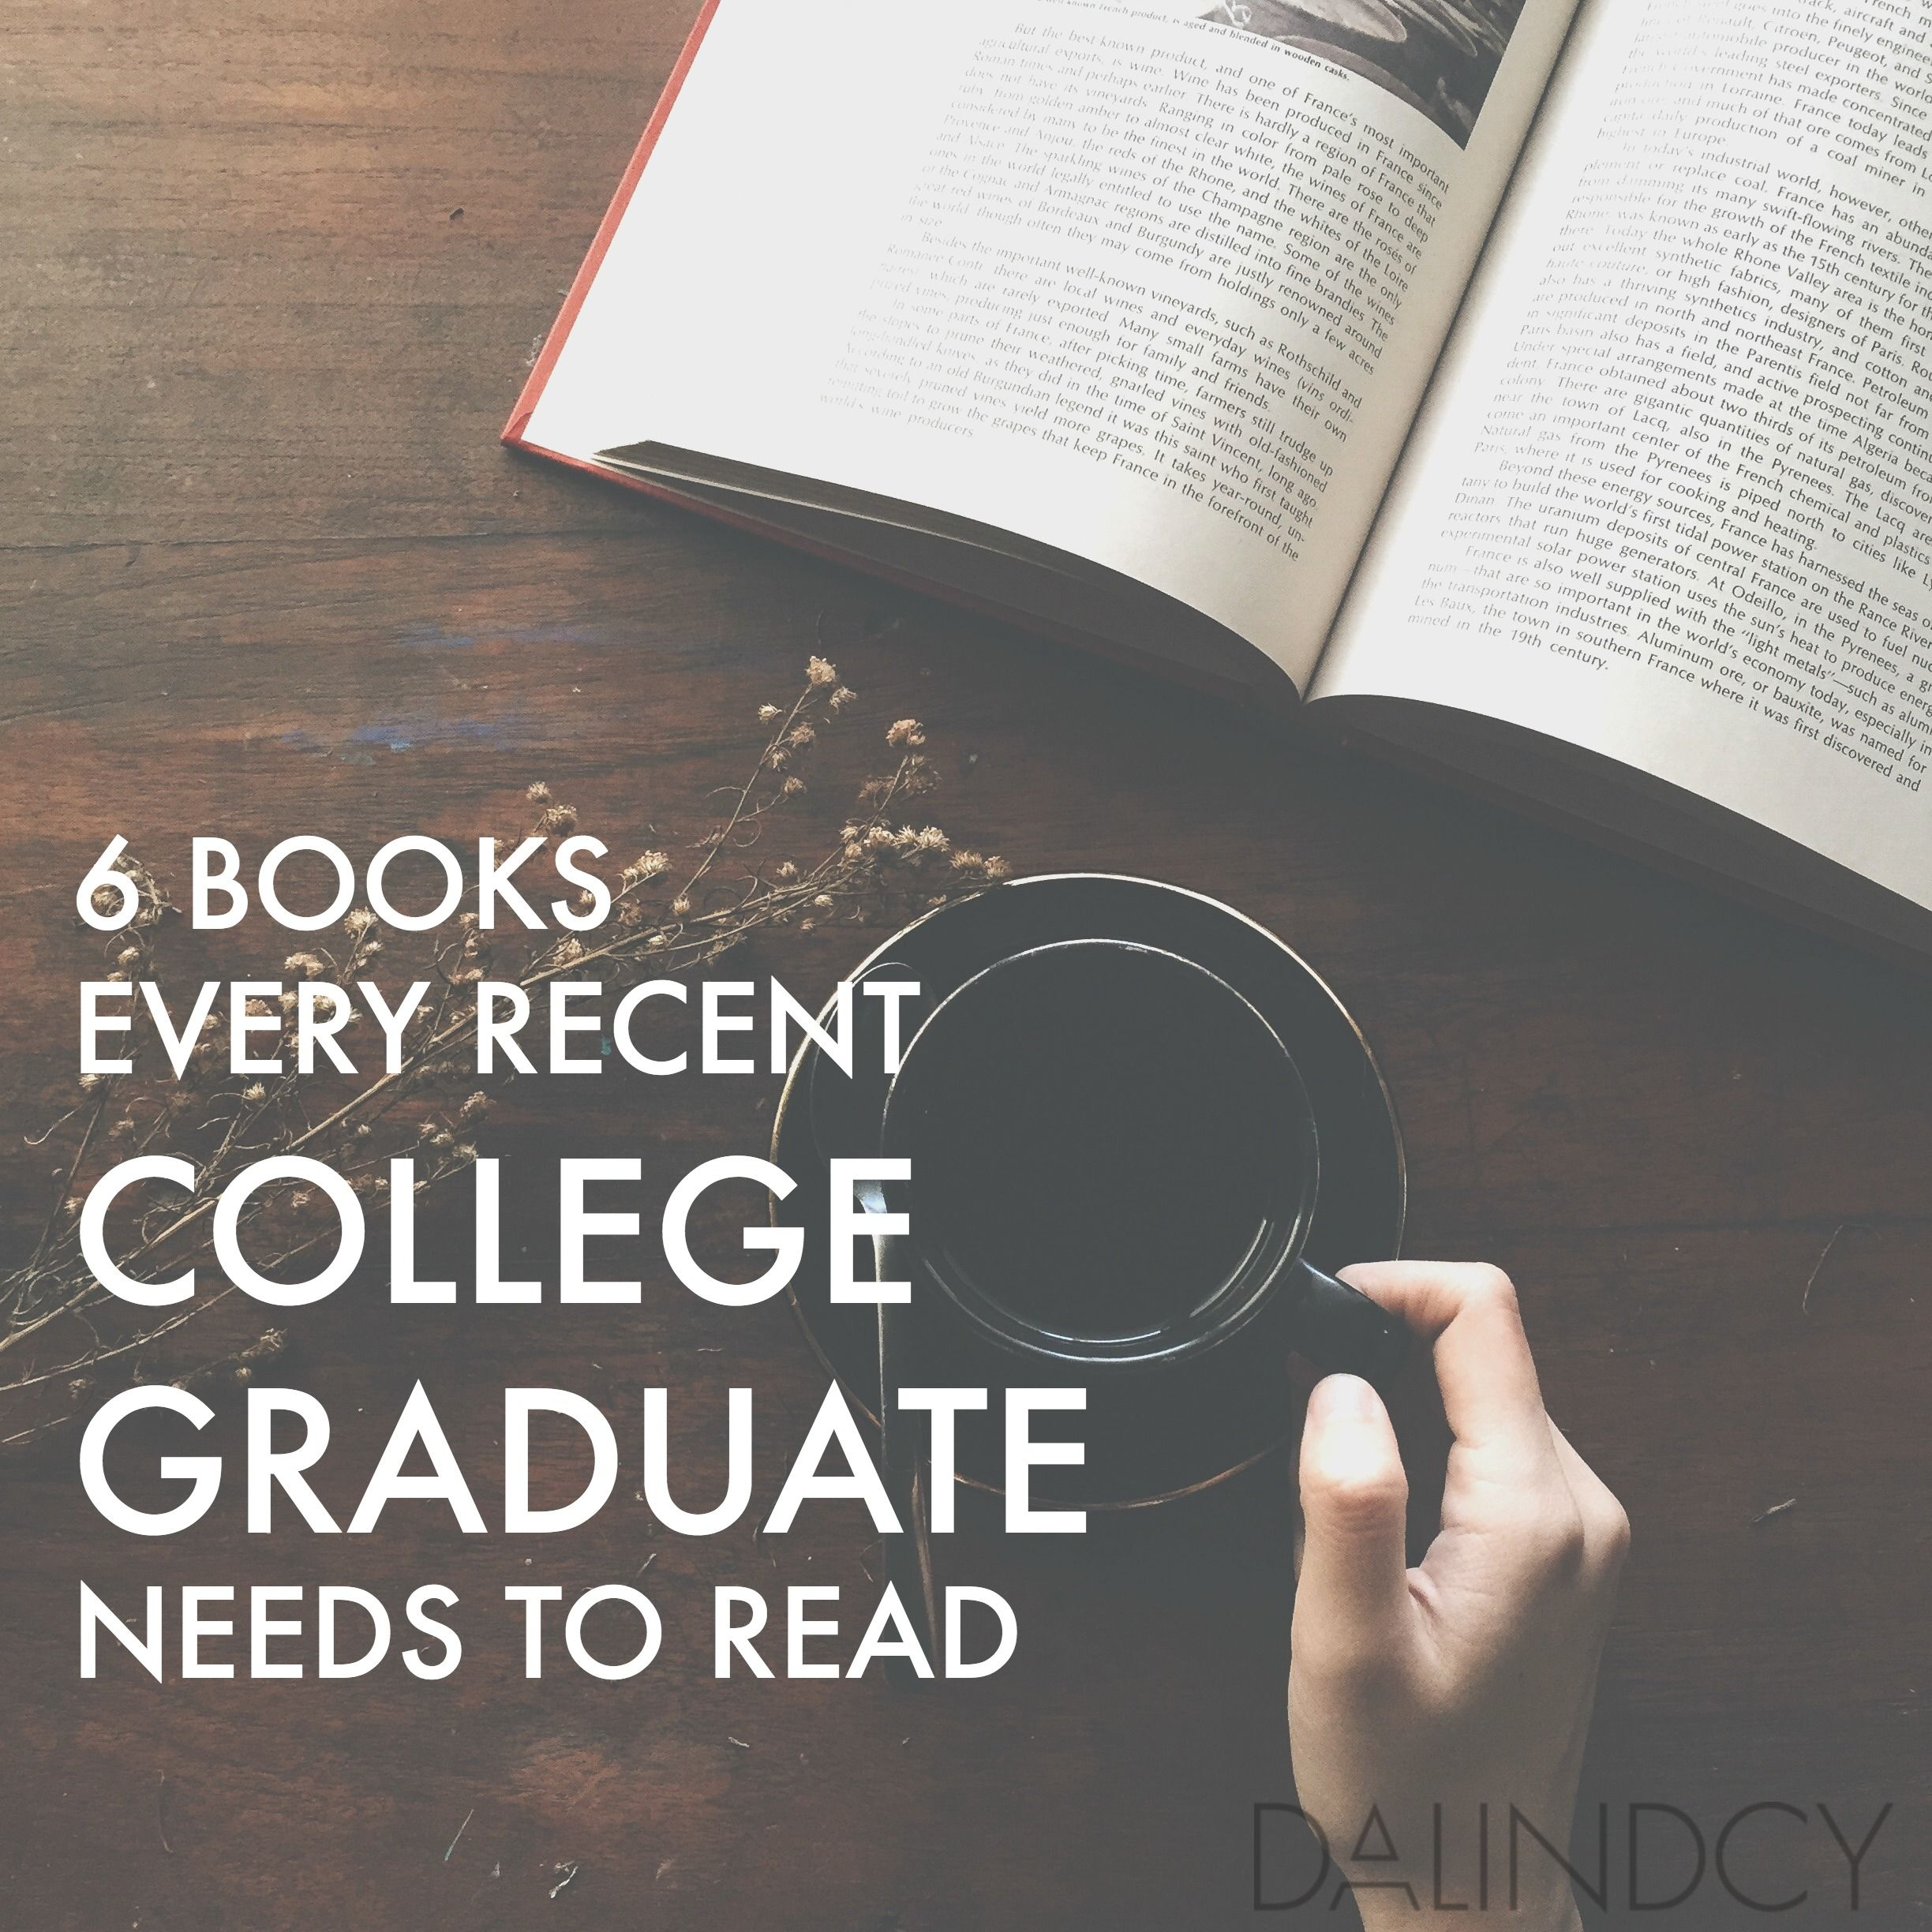 books for college graduates